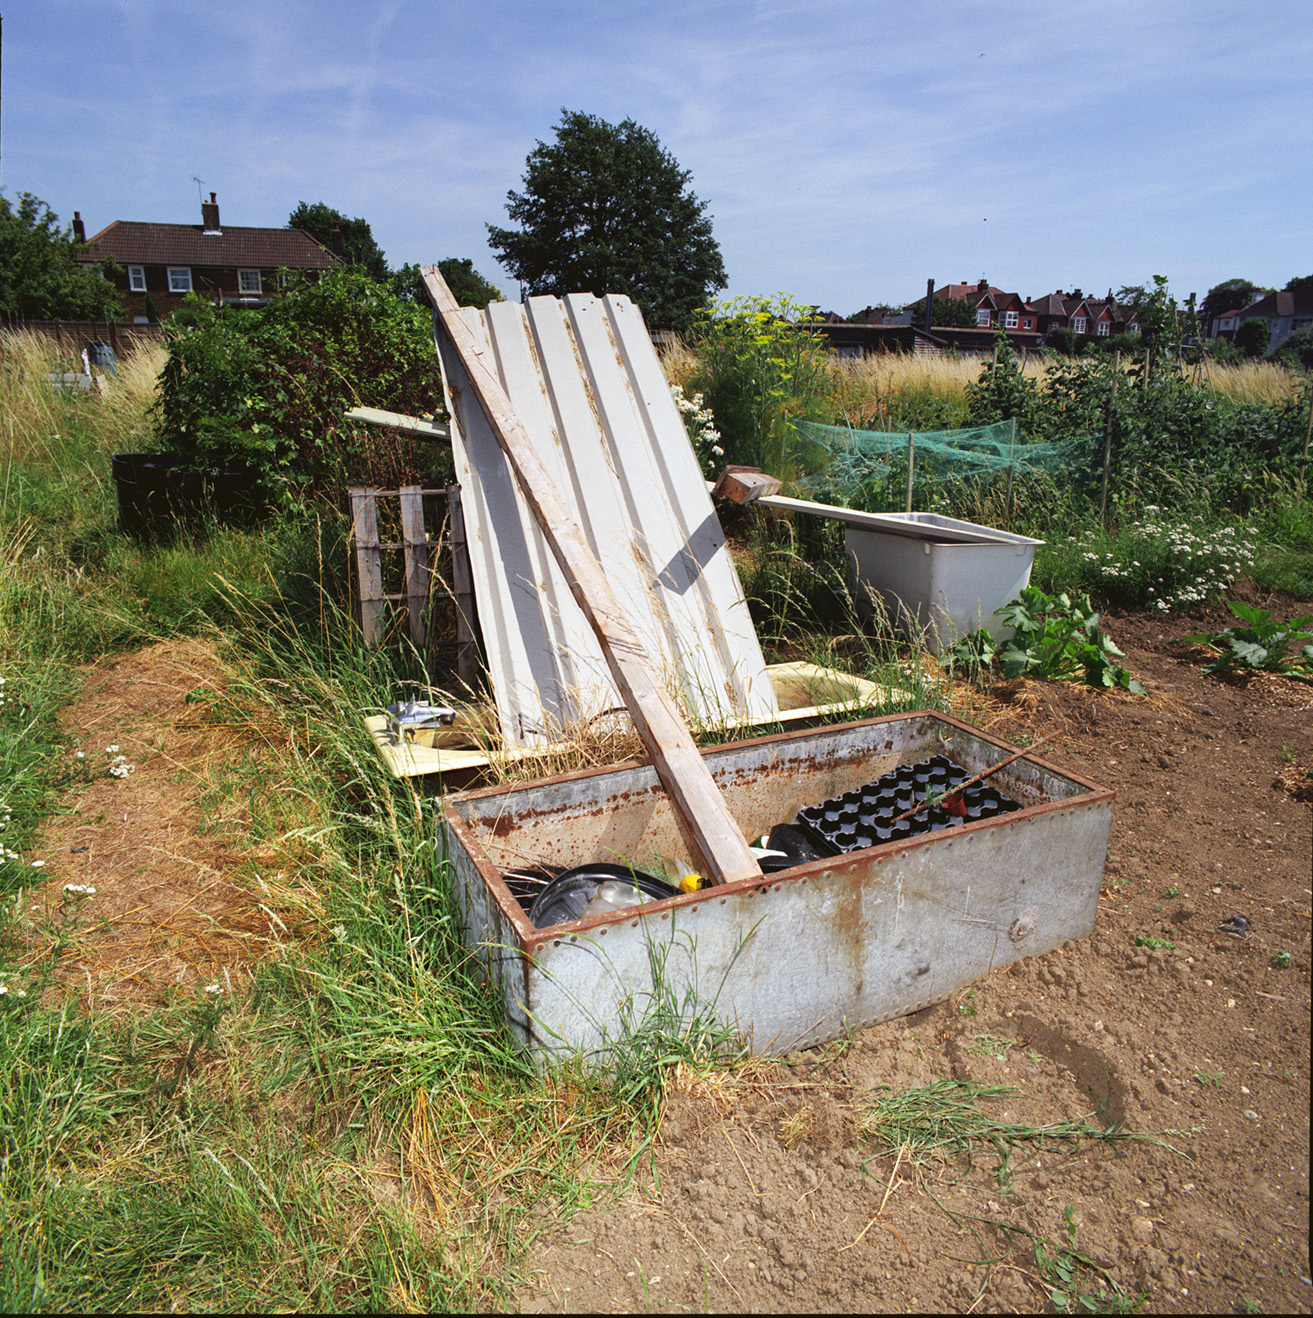 London_Portrait_Photographer_Inner_City_Landscapes_allotment+sculpture+1-7.jpg